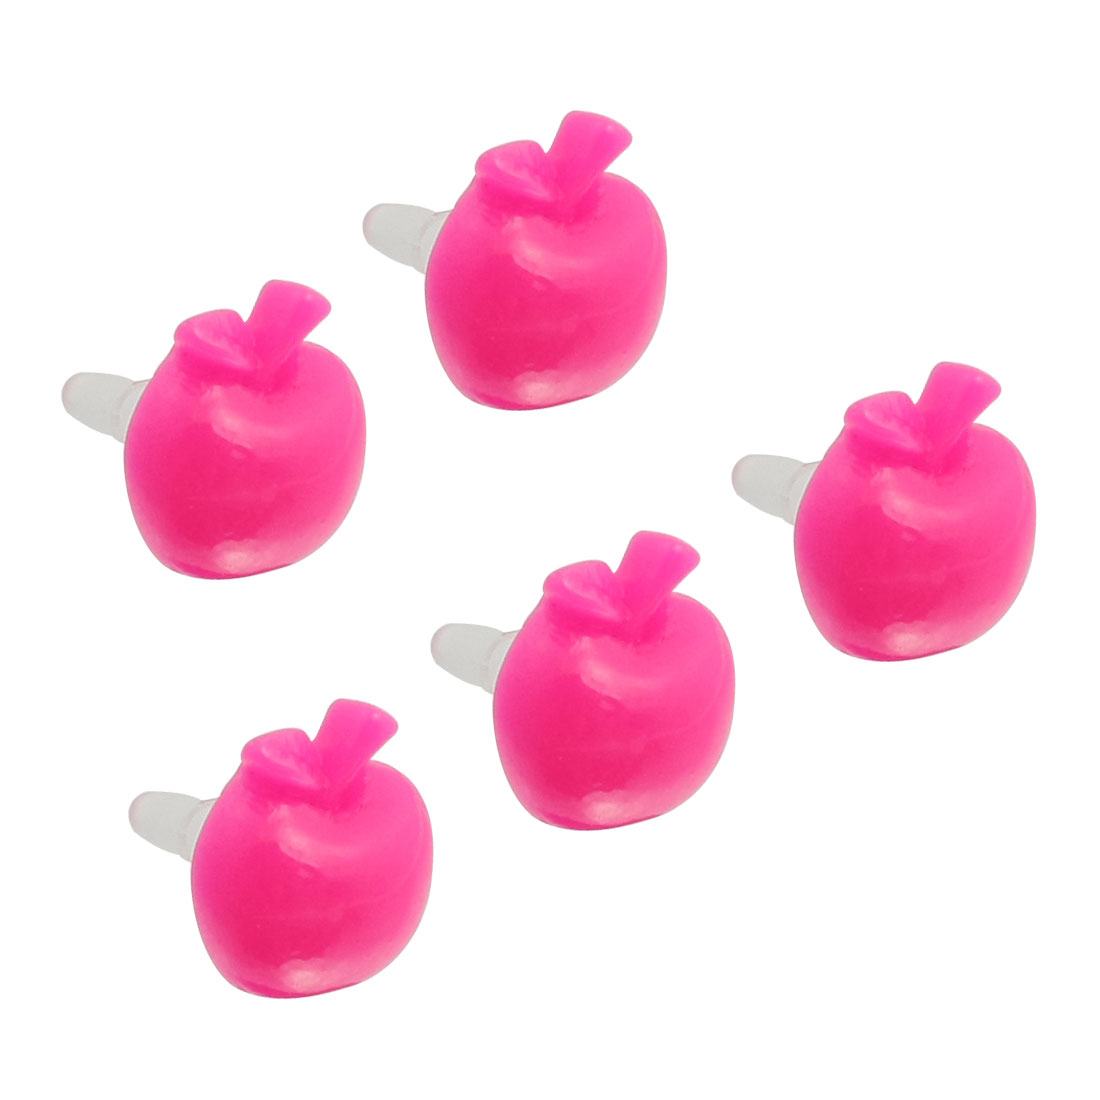 5 Pcs Magenta Apple Shape 3.5mm Ear Cap Anti Dust Plug Stopper for iPhone 5G 3G 4S